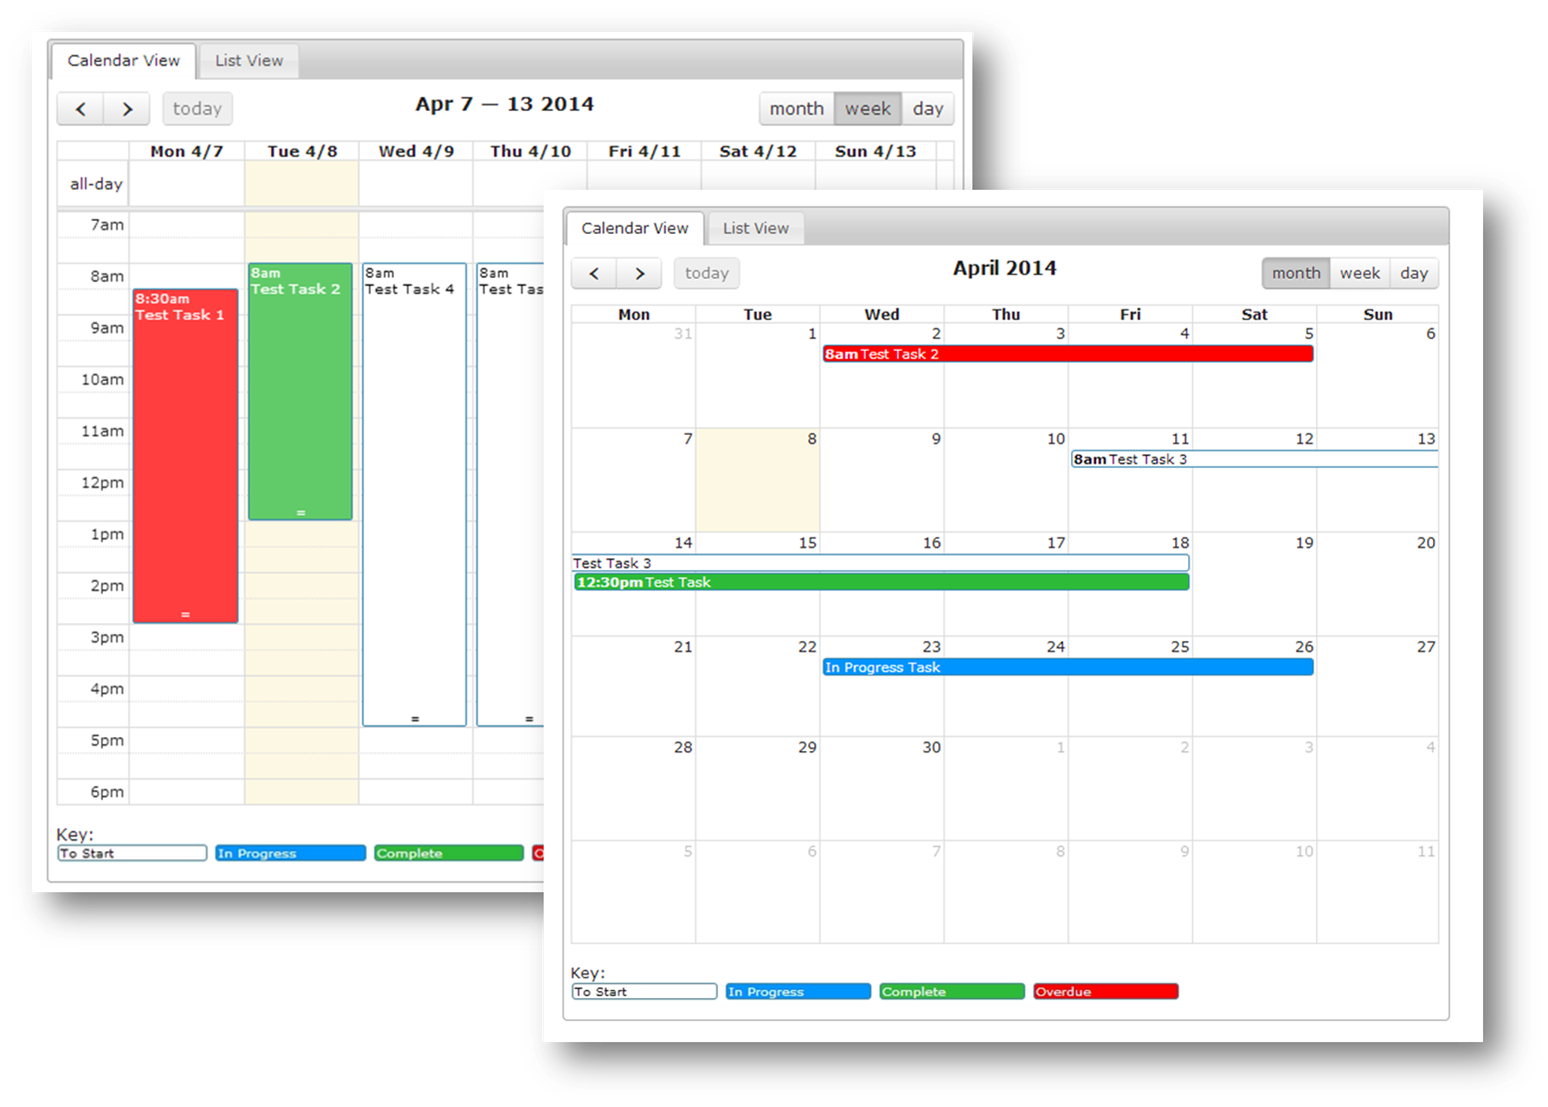 Ornavi Screenshot - Two Calendar Views